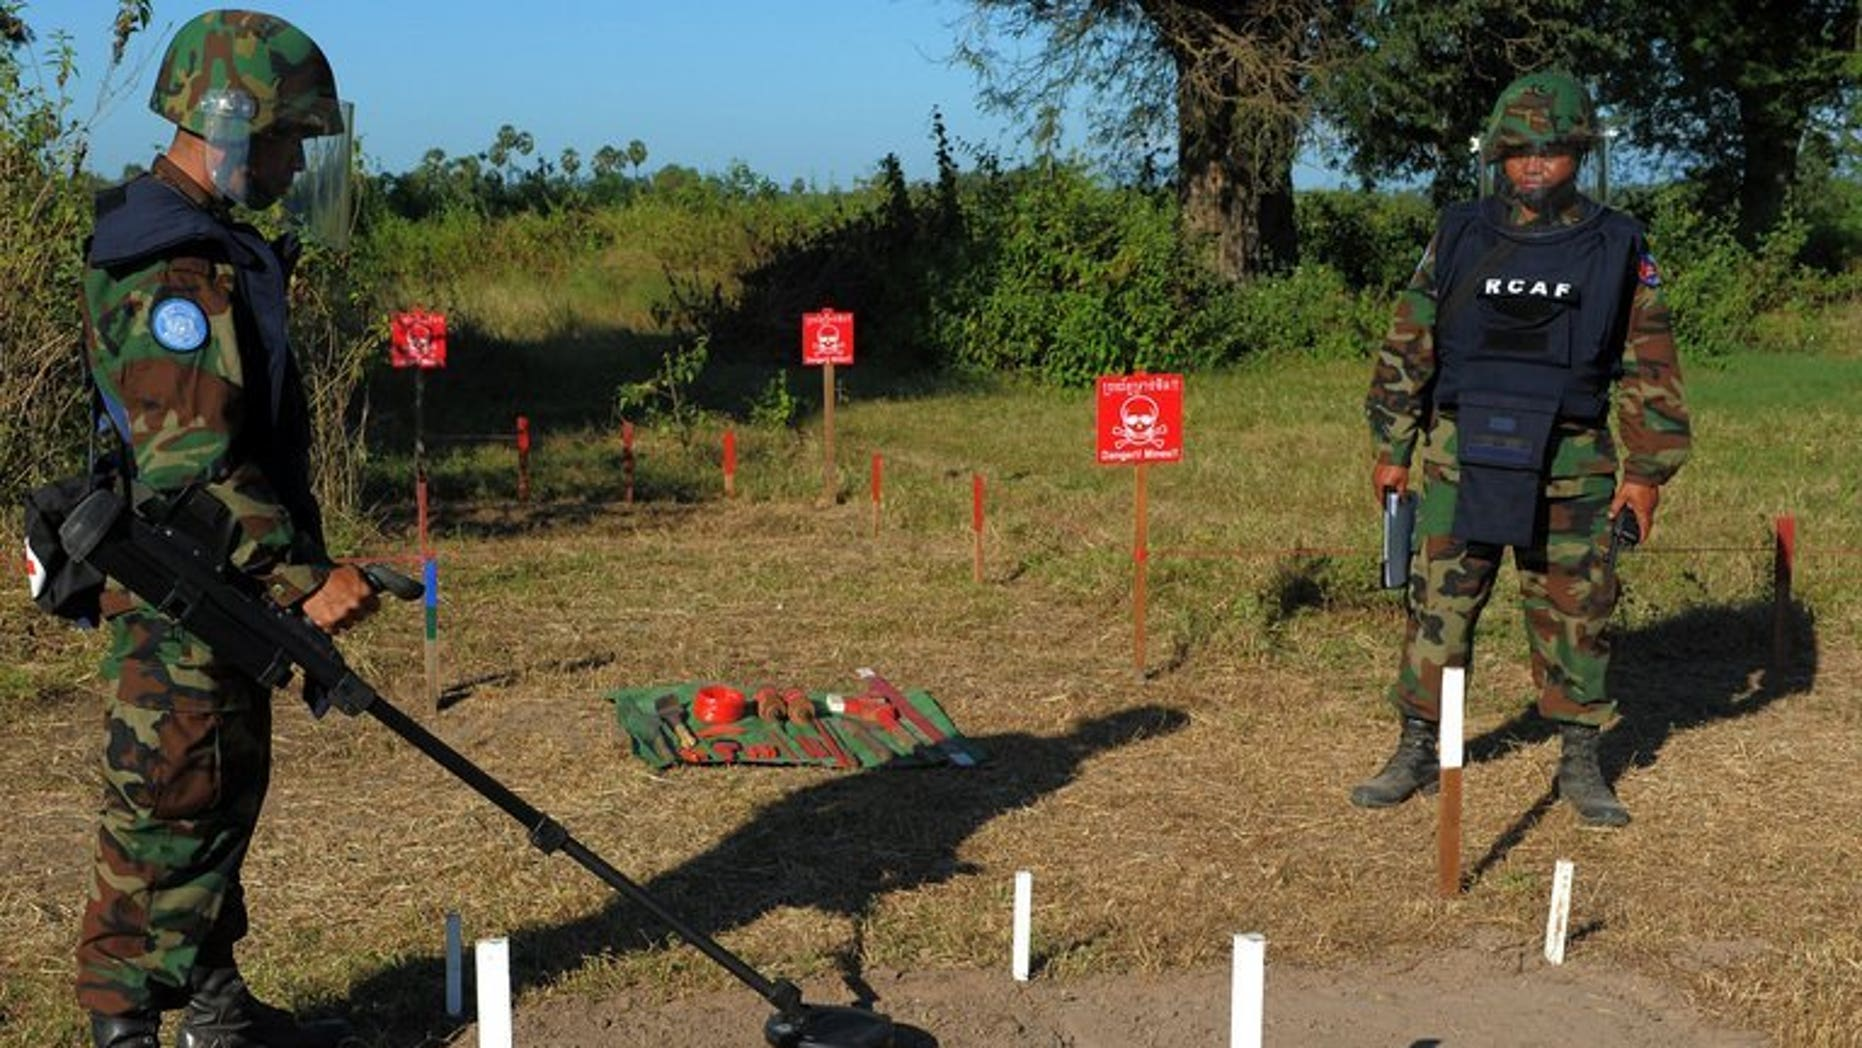 Cambodian soldiers scan for mines in Oudong, some 40 kilometers north of Phnom Penh, on November 27, 2011. Two Cambodian children and a man were killed when their buffalo cart hit an anti-tank mine left over from the country's civil war, police tell AFP.